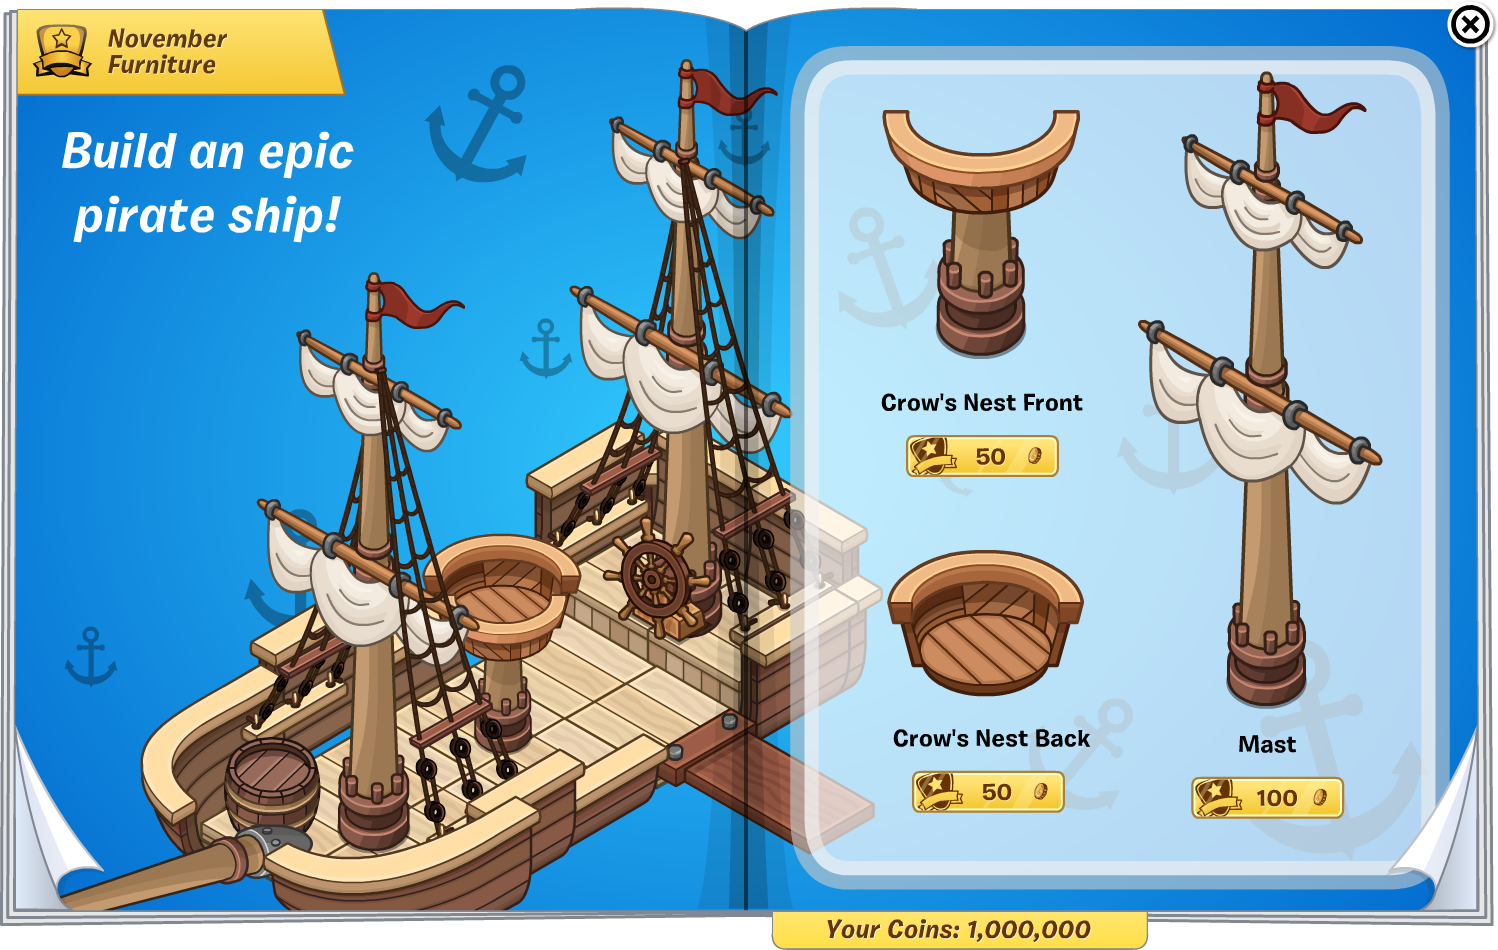 furniture catalogs 2014. Catalogs Furniture November 2014 Pirate Collection 1.png